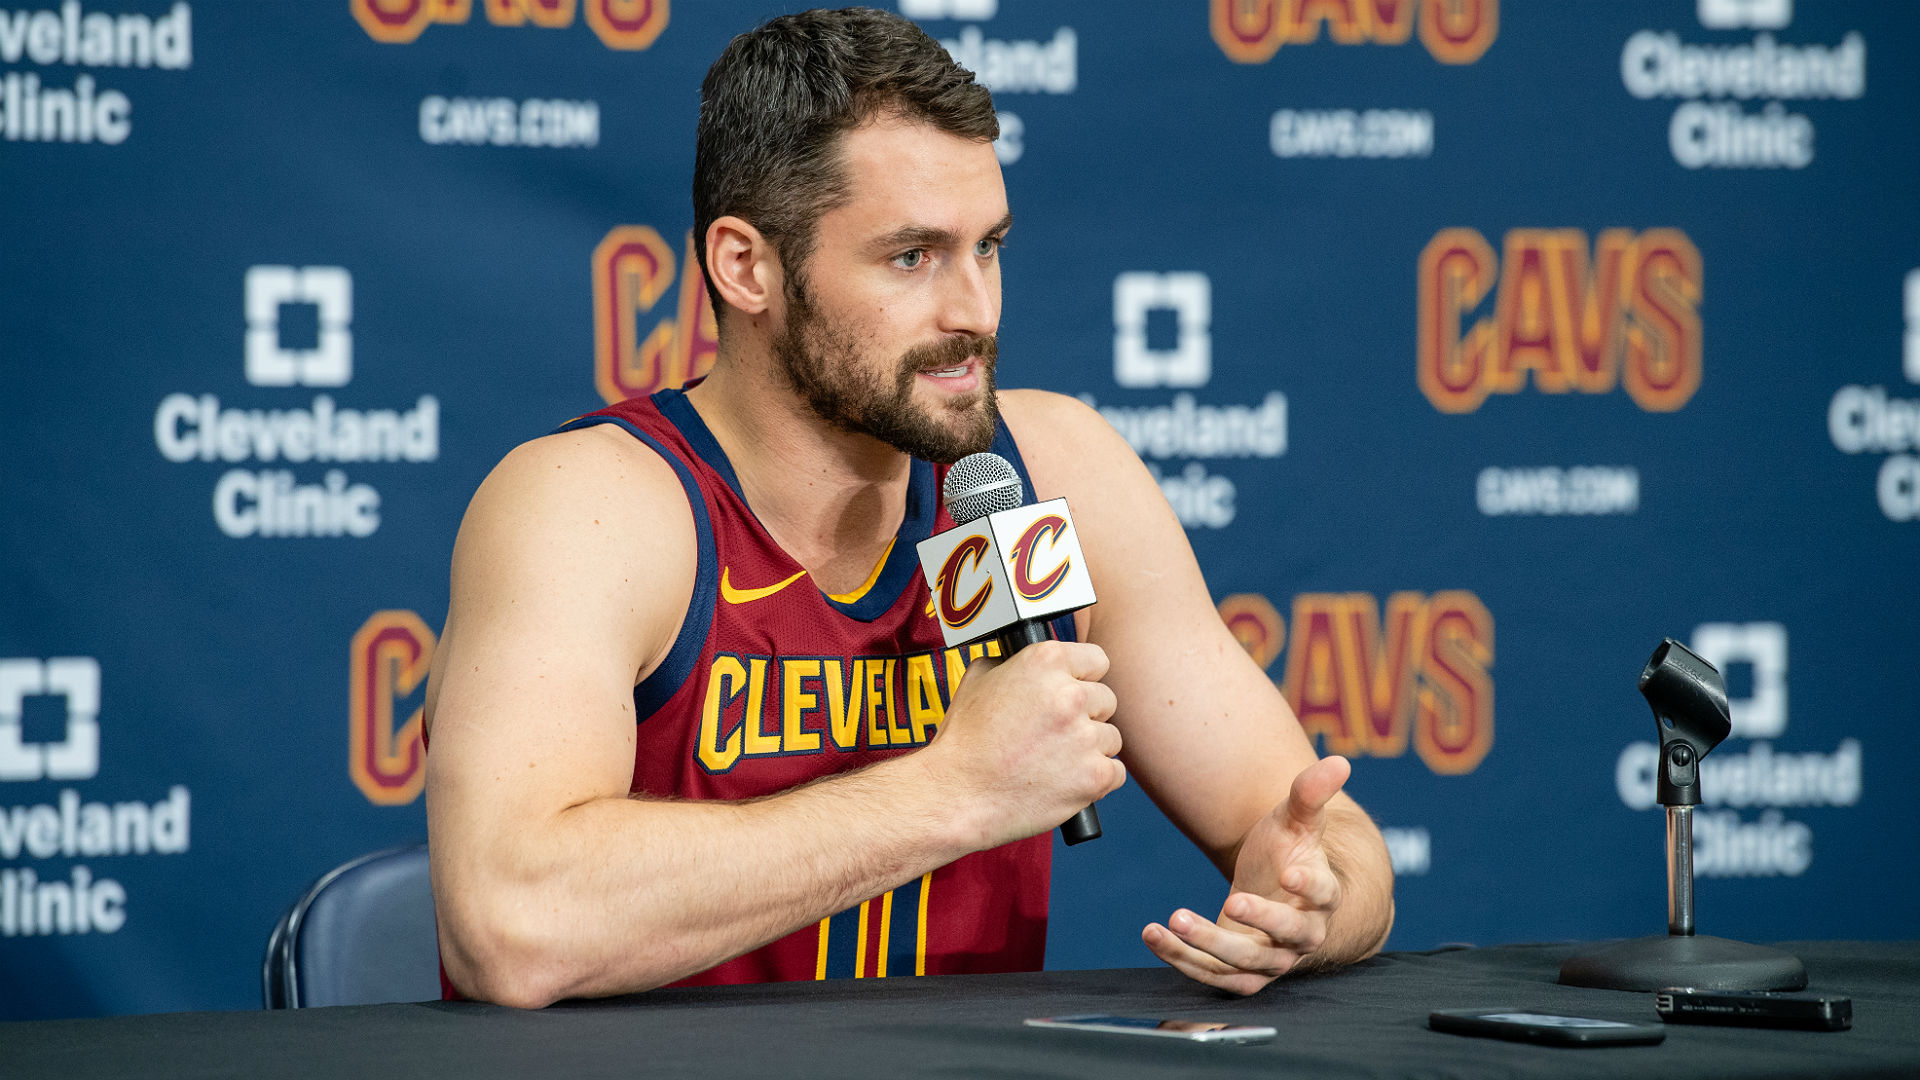 Love says Cavs 'will surprise a lot of people'